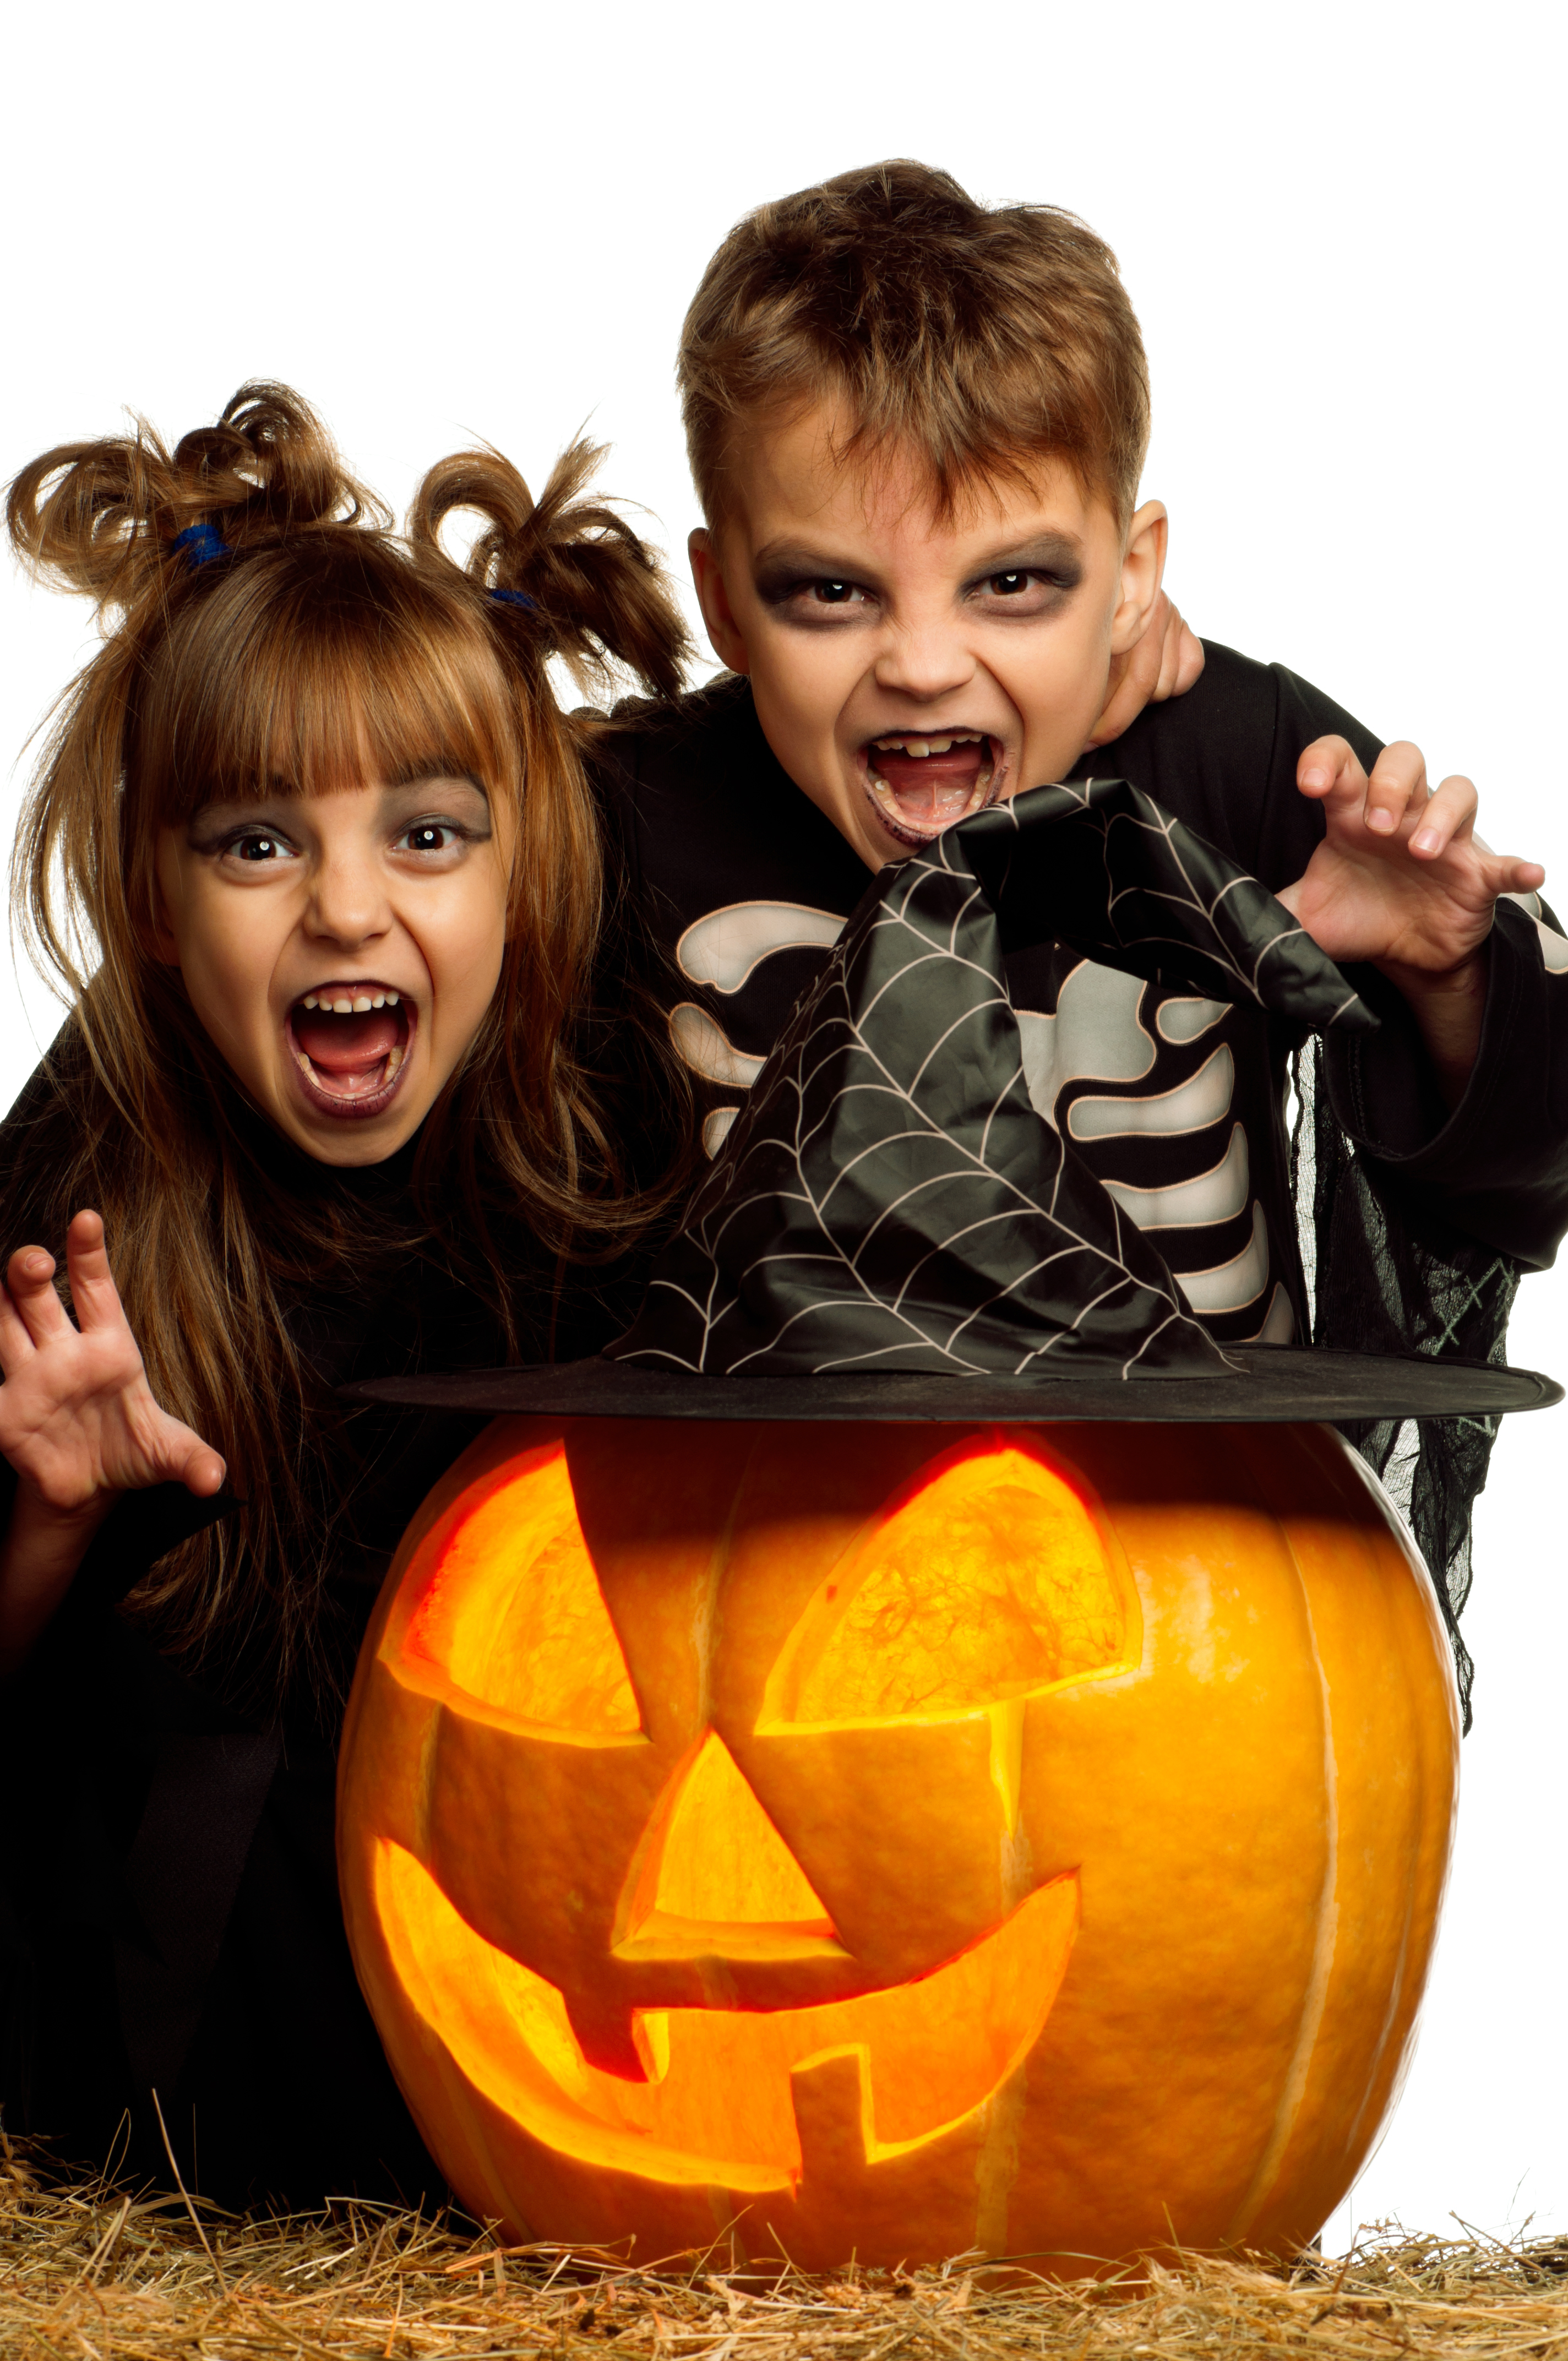 2013 Halloween Nail Art Nail Polish Ideas: Halloween Costumes For 2013: Check Out This Year's Most